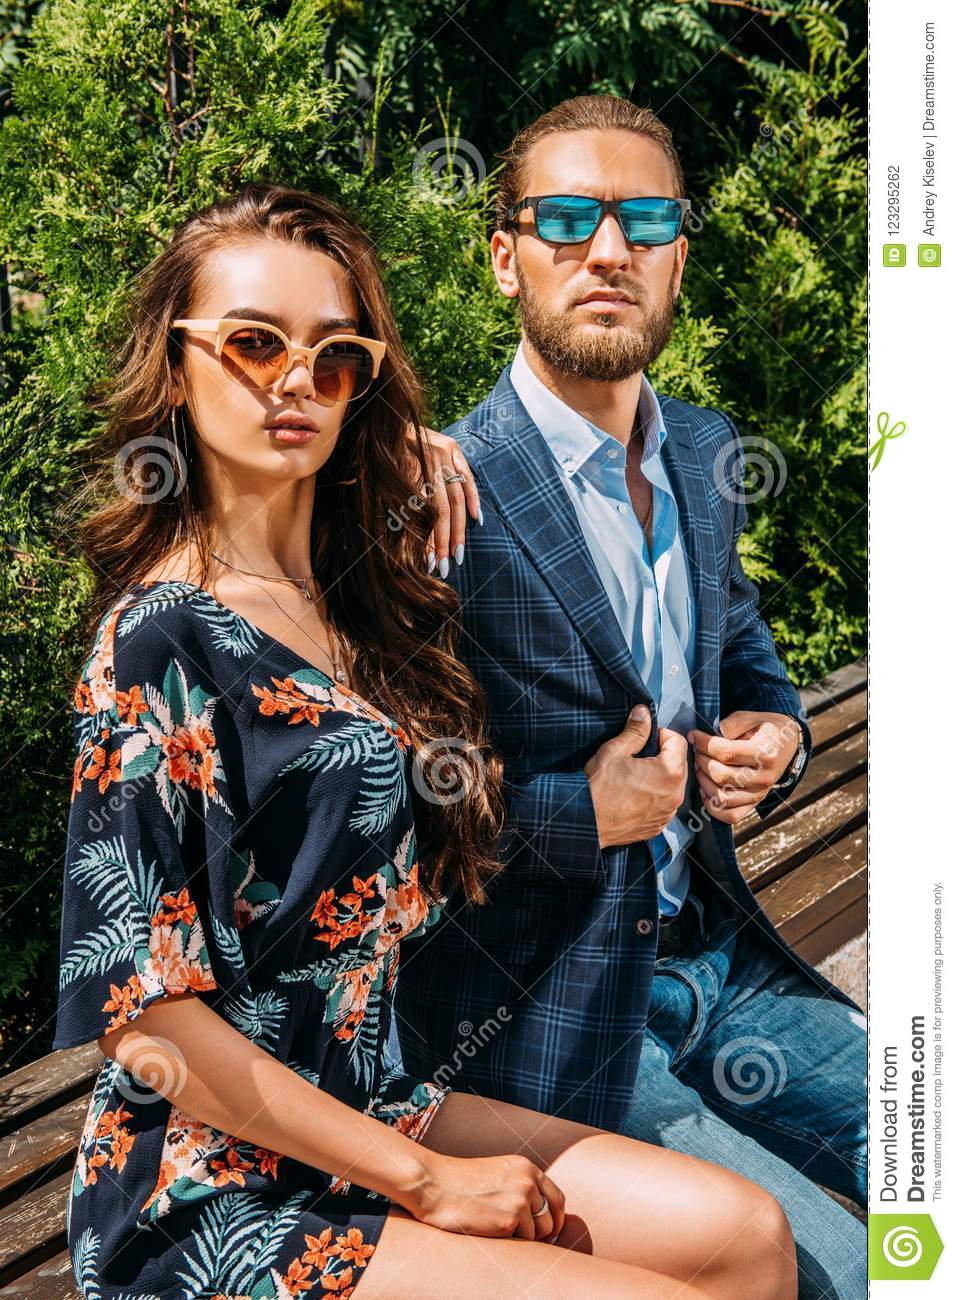 Fashionable young people